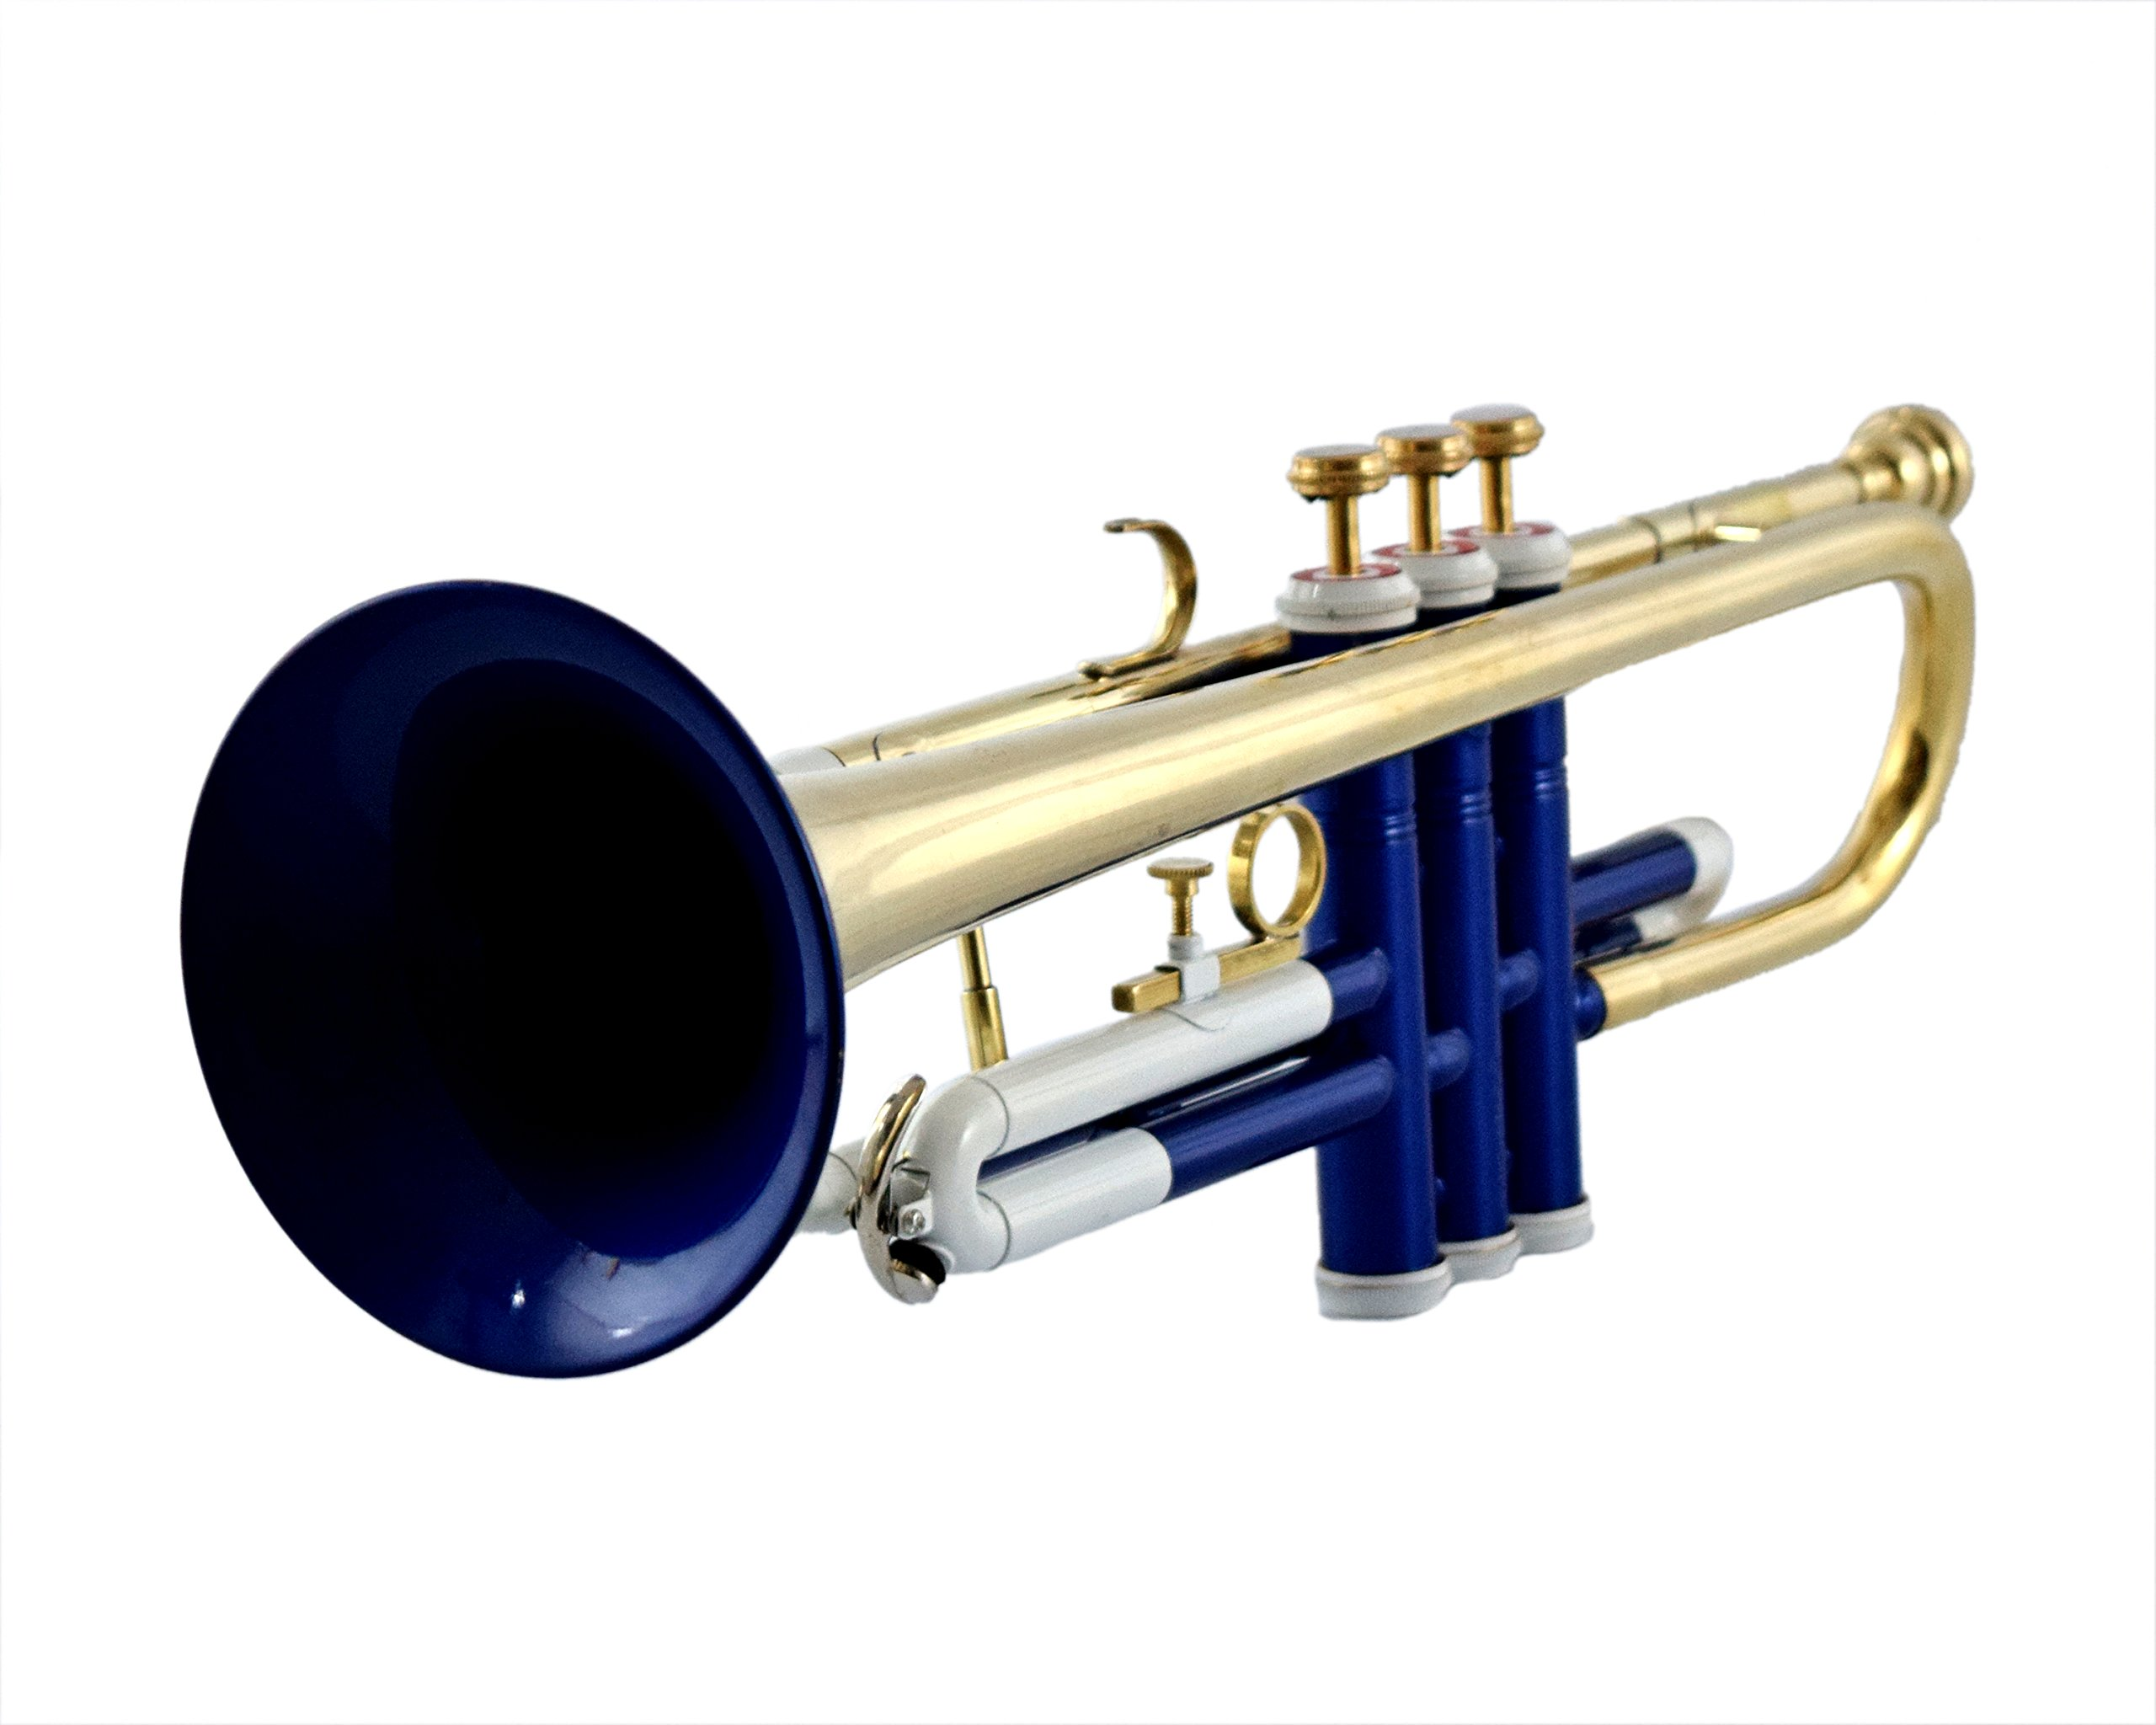 NASIR ALI Bb PITCH TRUMPET WITH HARD CASE AND MP, BLUE COLOR + BRASS